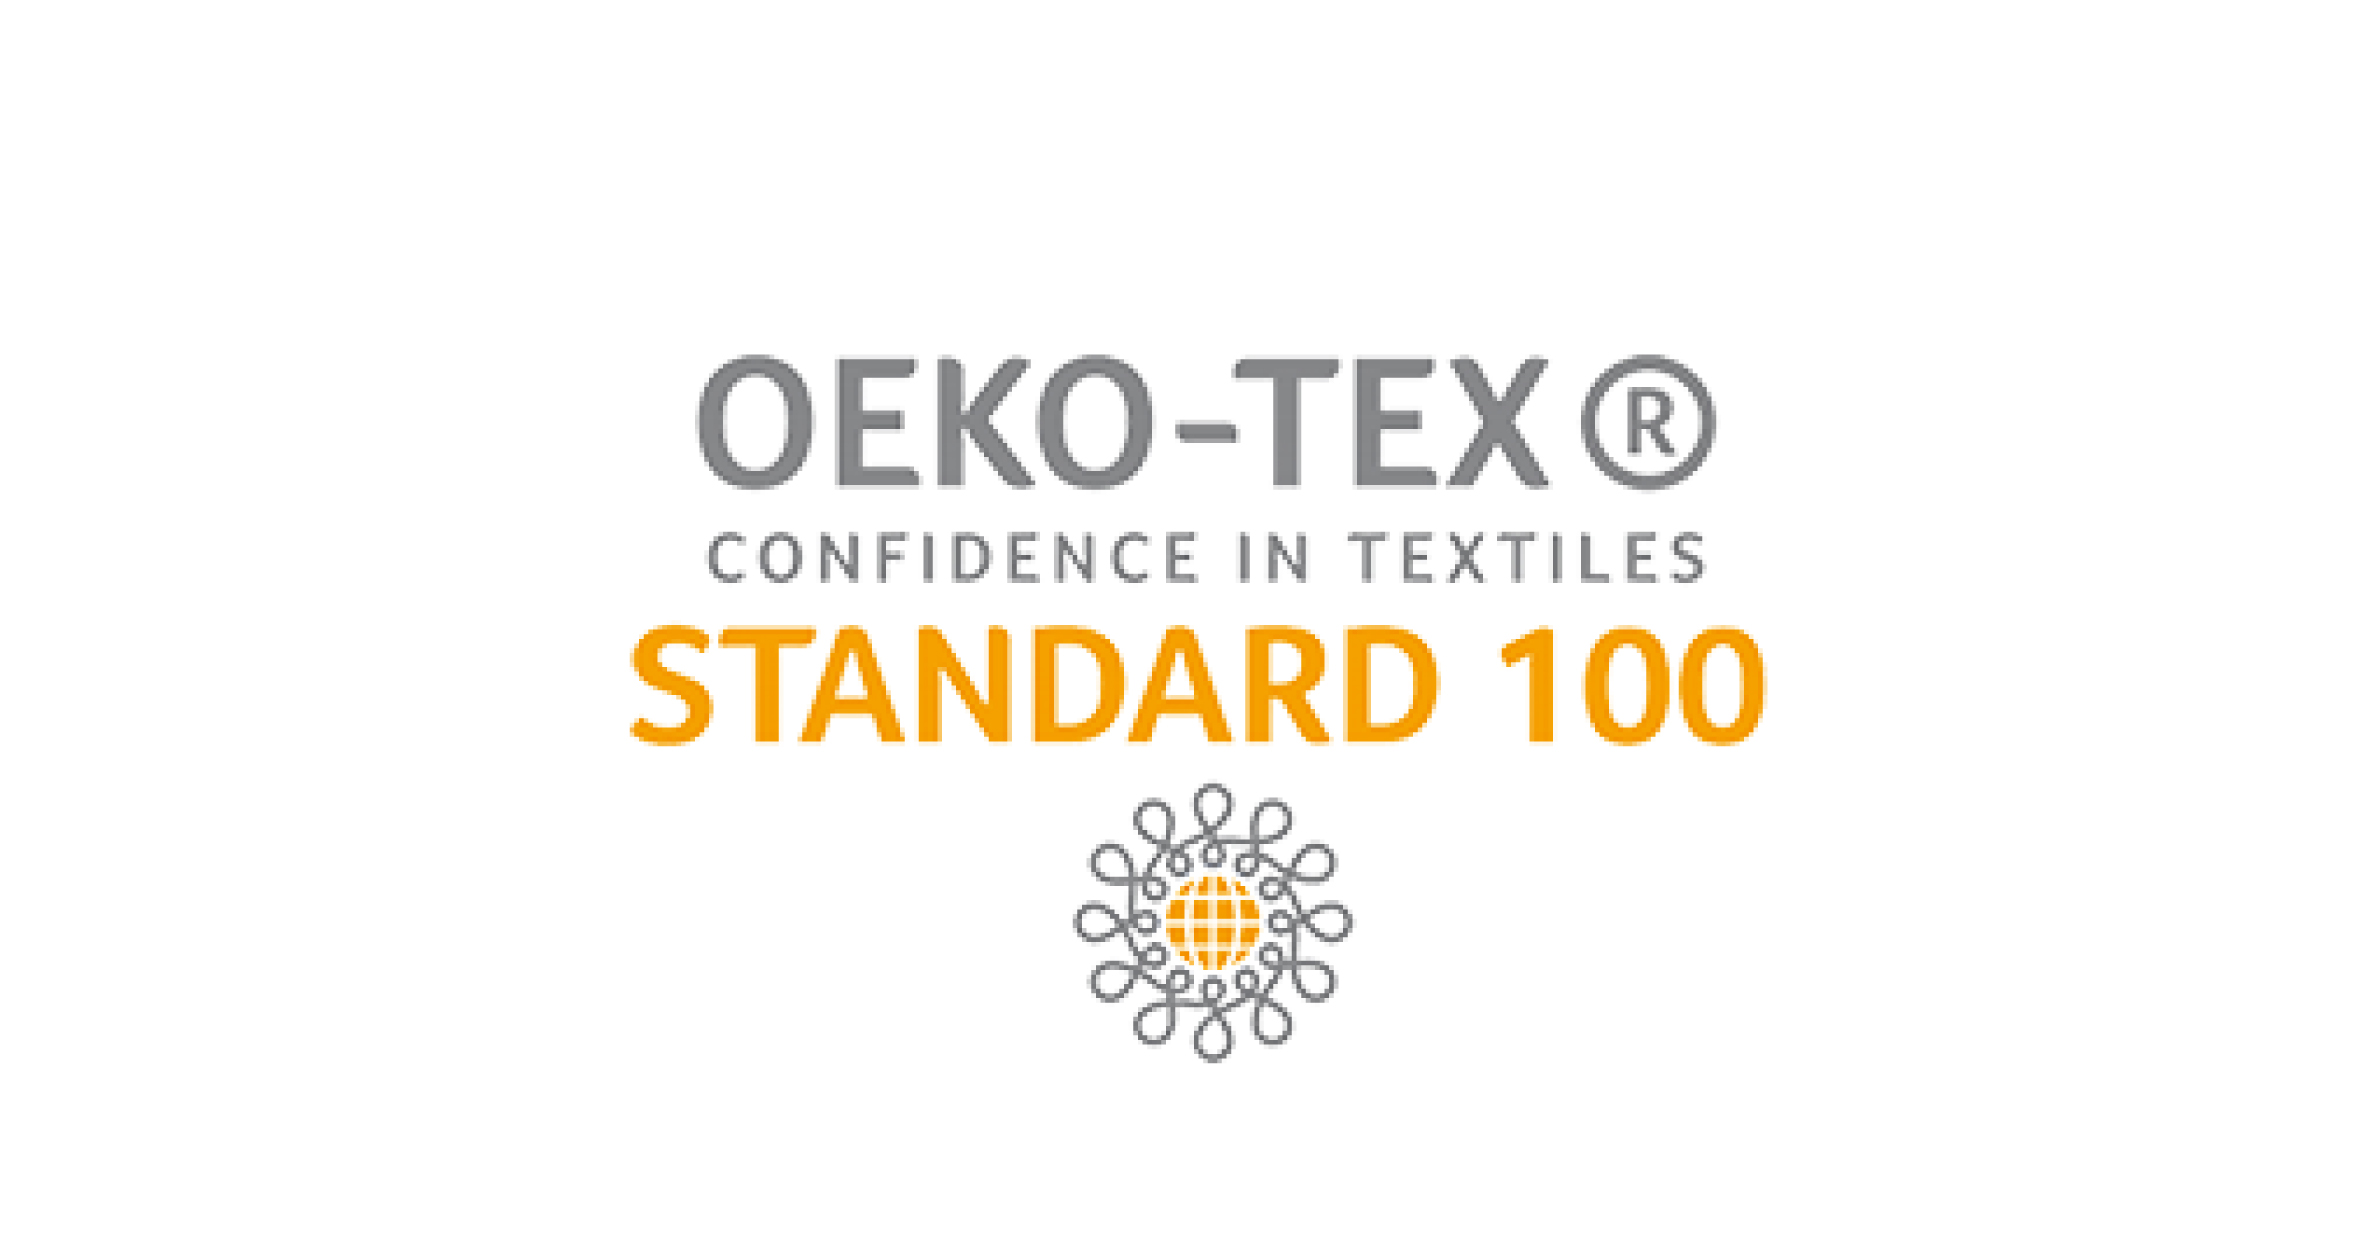 oeko-tex latexbio